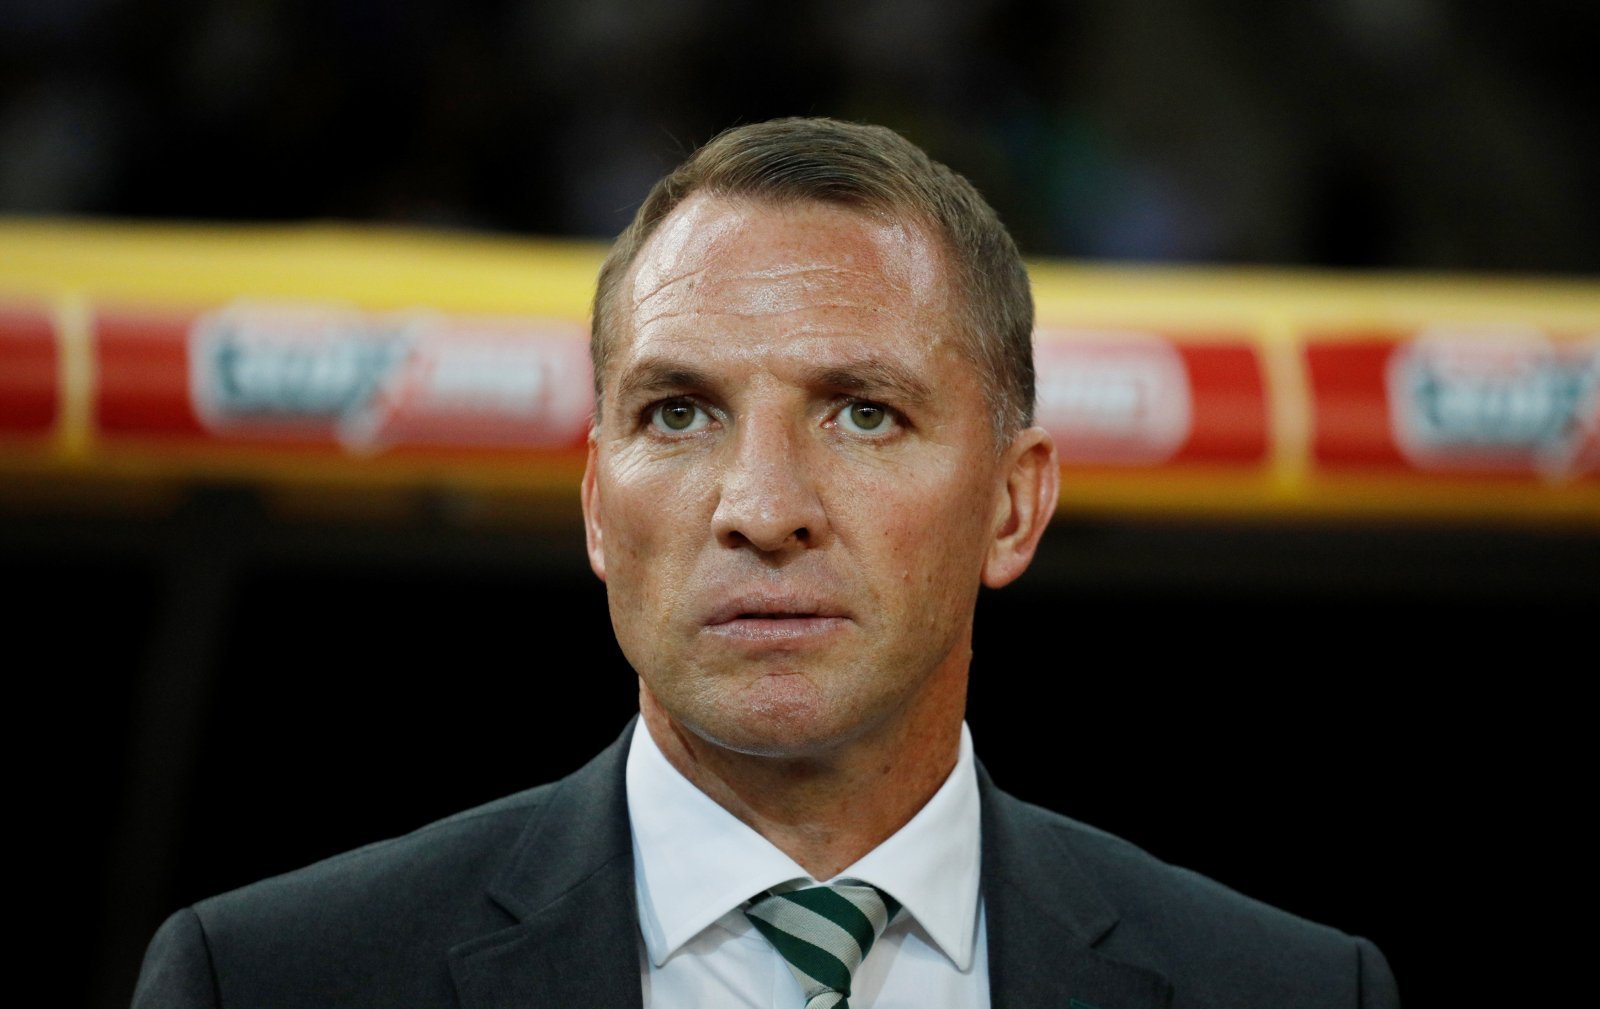 Brendan Rodgers has revealed an update which is likely to concern Celtic supporters